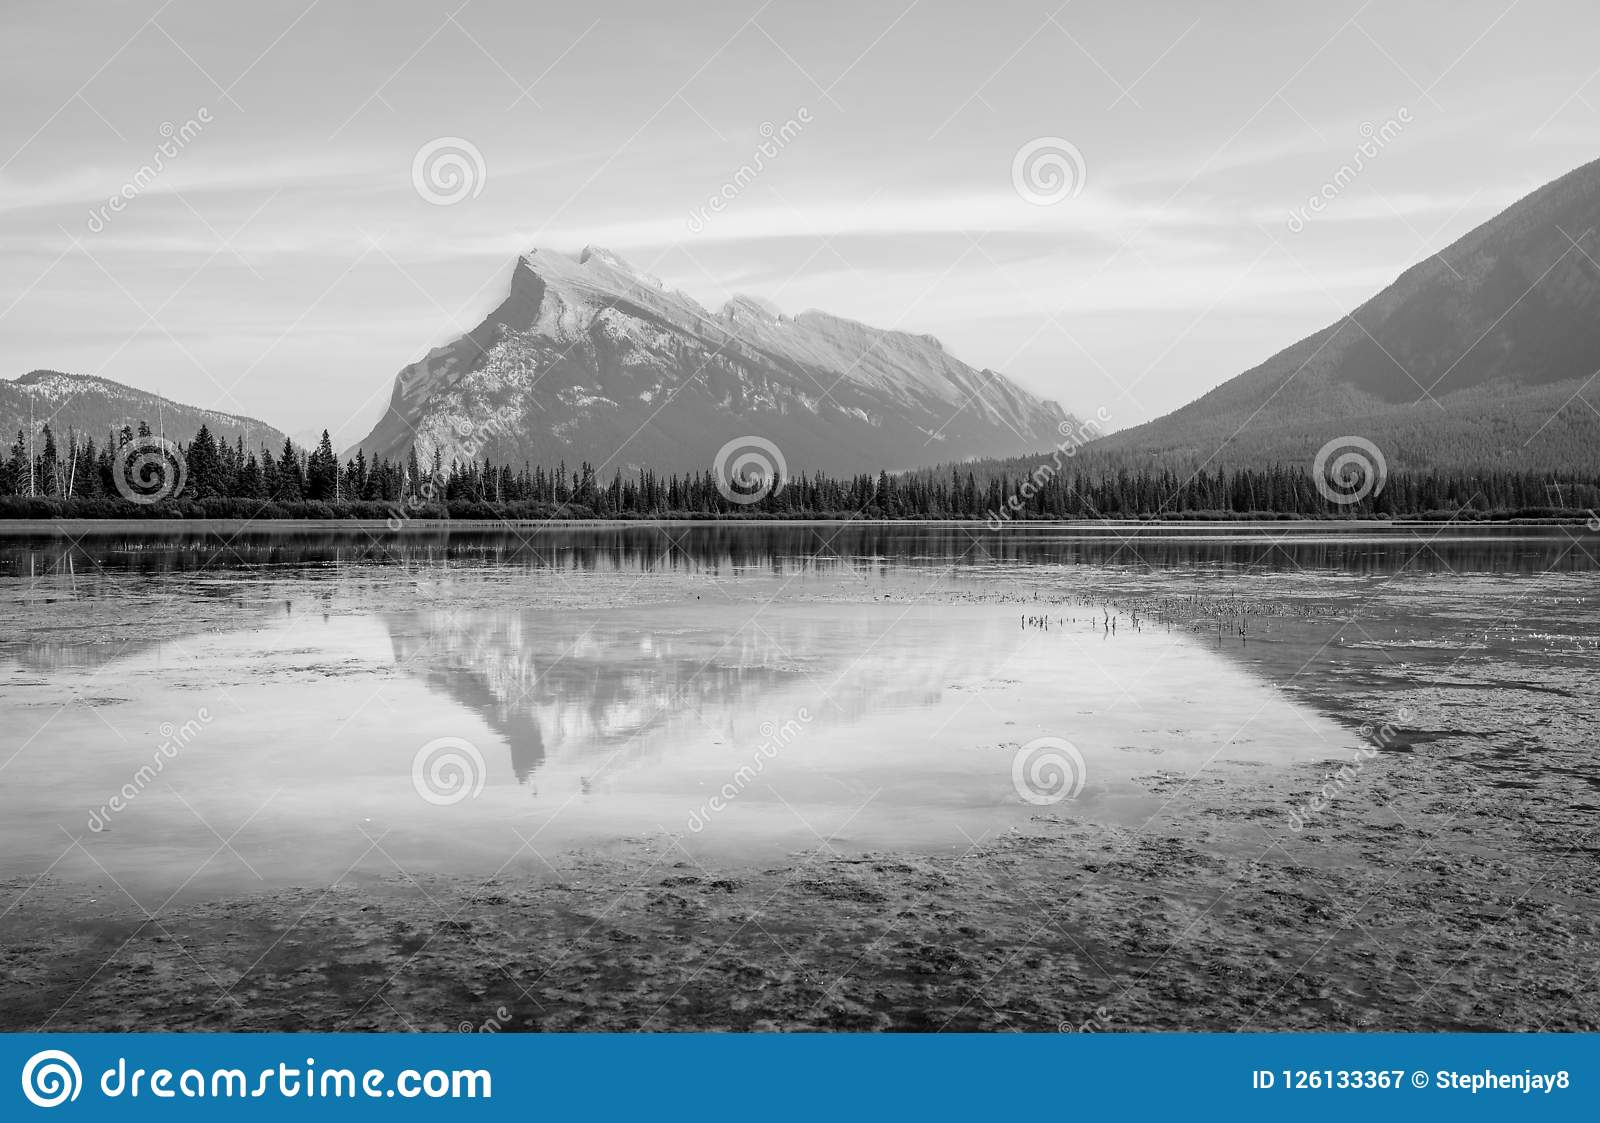 Beautiful black and white landscape photo of vermillion lakes in banff b c canada